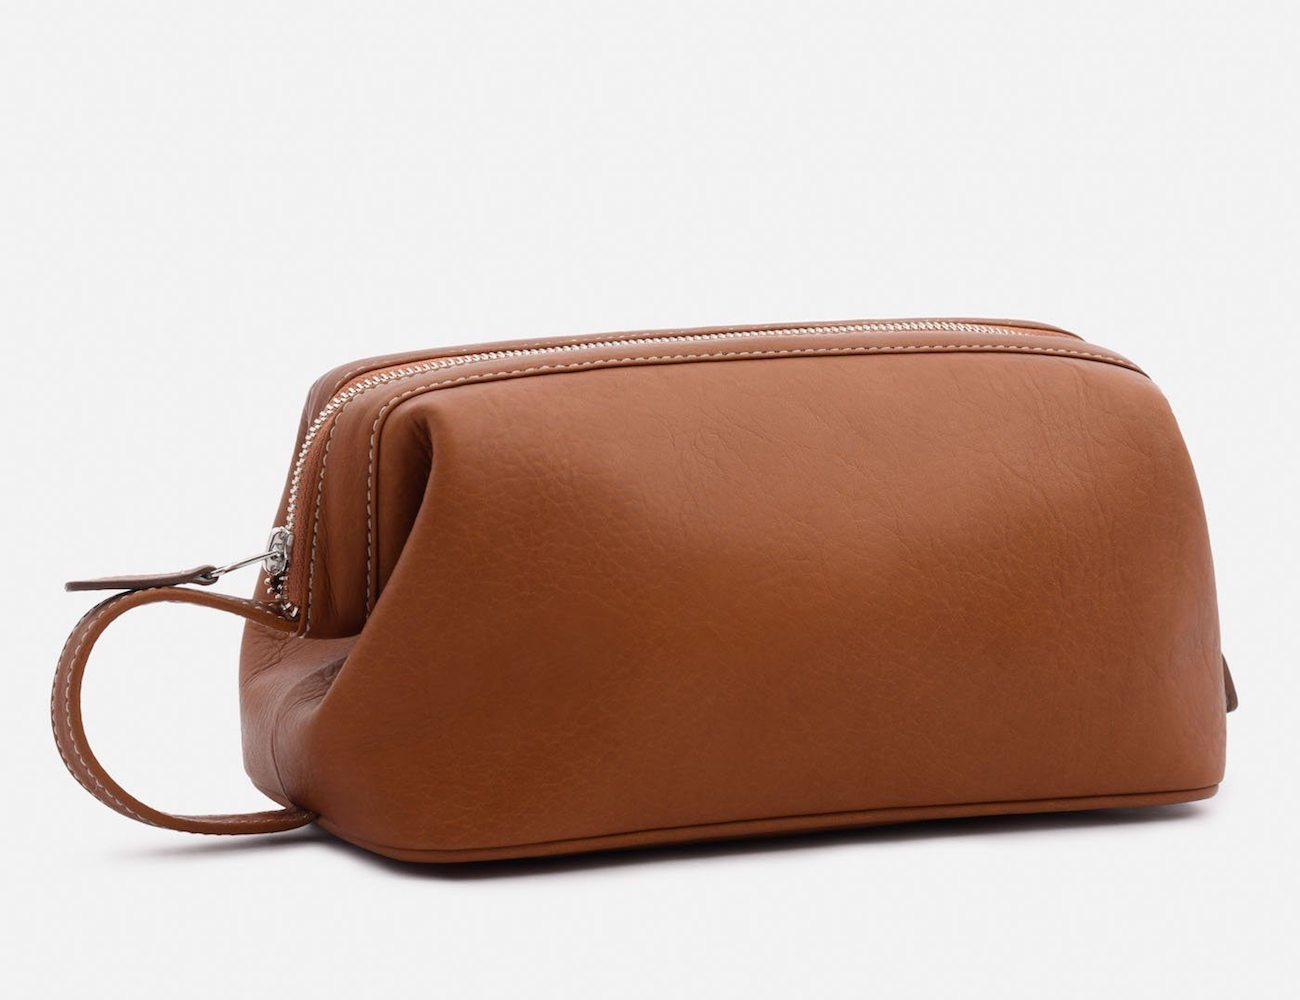 Beckett Simonon Vincent Leather Dopp Kit